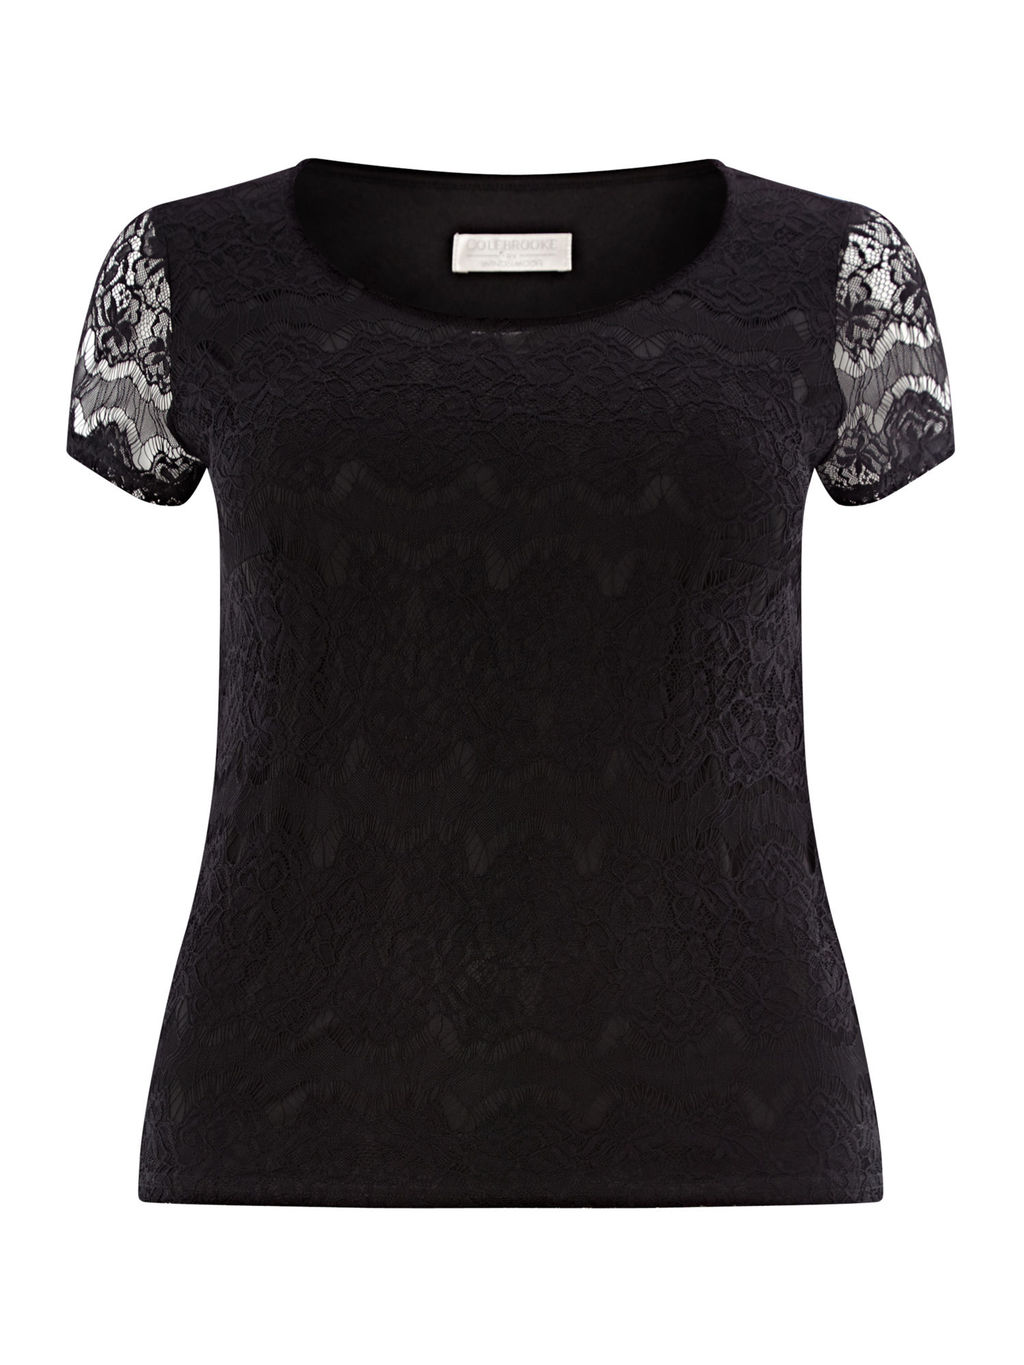 Black Lace Top - neckline: round neck; style: t-shirt; predominant colour: black; occasions: casual, evening; length: standard; fibres: polyester/polyamide - stretch; fit: body skimming; sleeve length: short sleeve; sleeve style: standard; texture group: lace; pattern type: fabric; pattern size: standard; pattern: patterned/print; embellishment: lace; season: a/w 2015; wardrobe: highlight